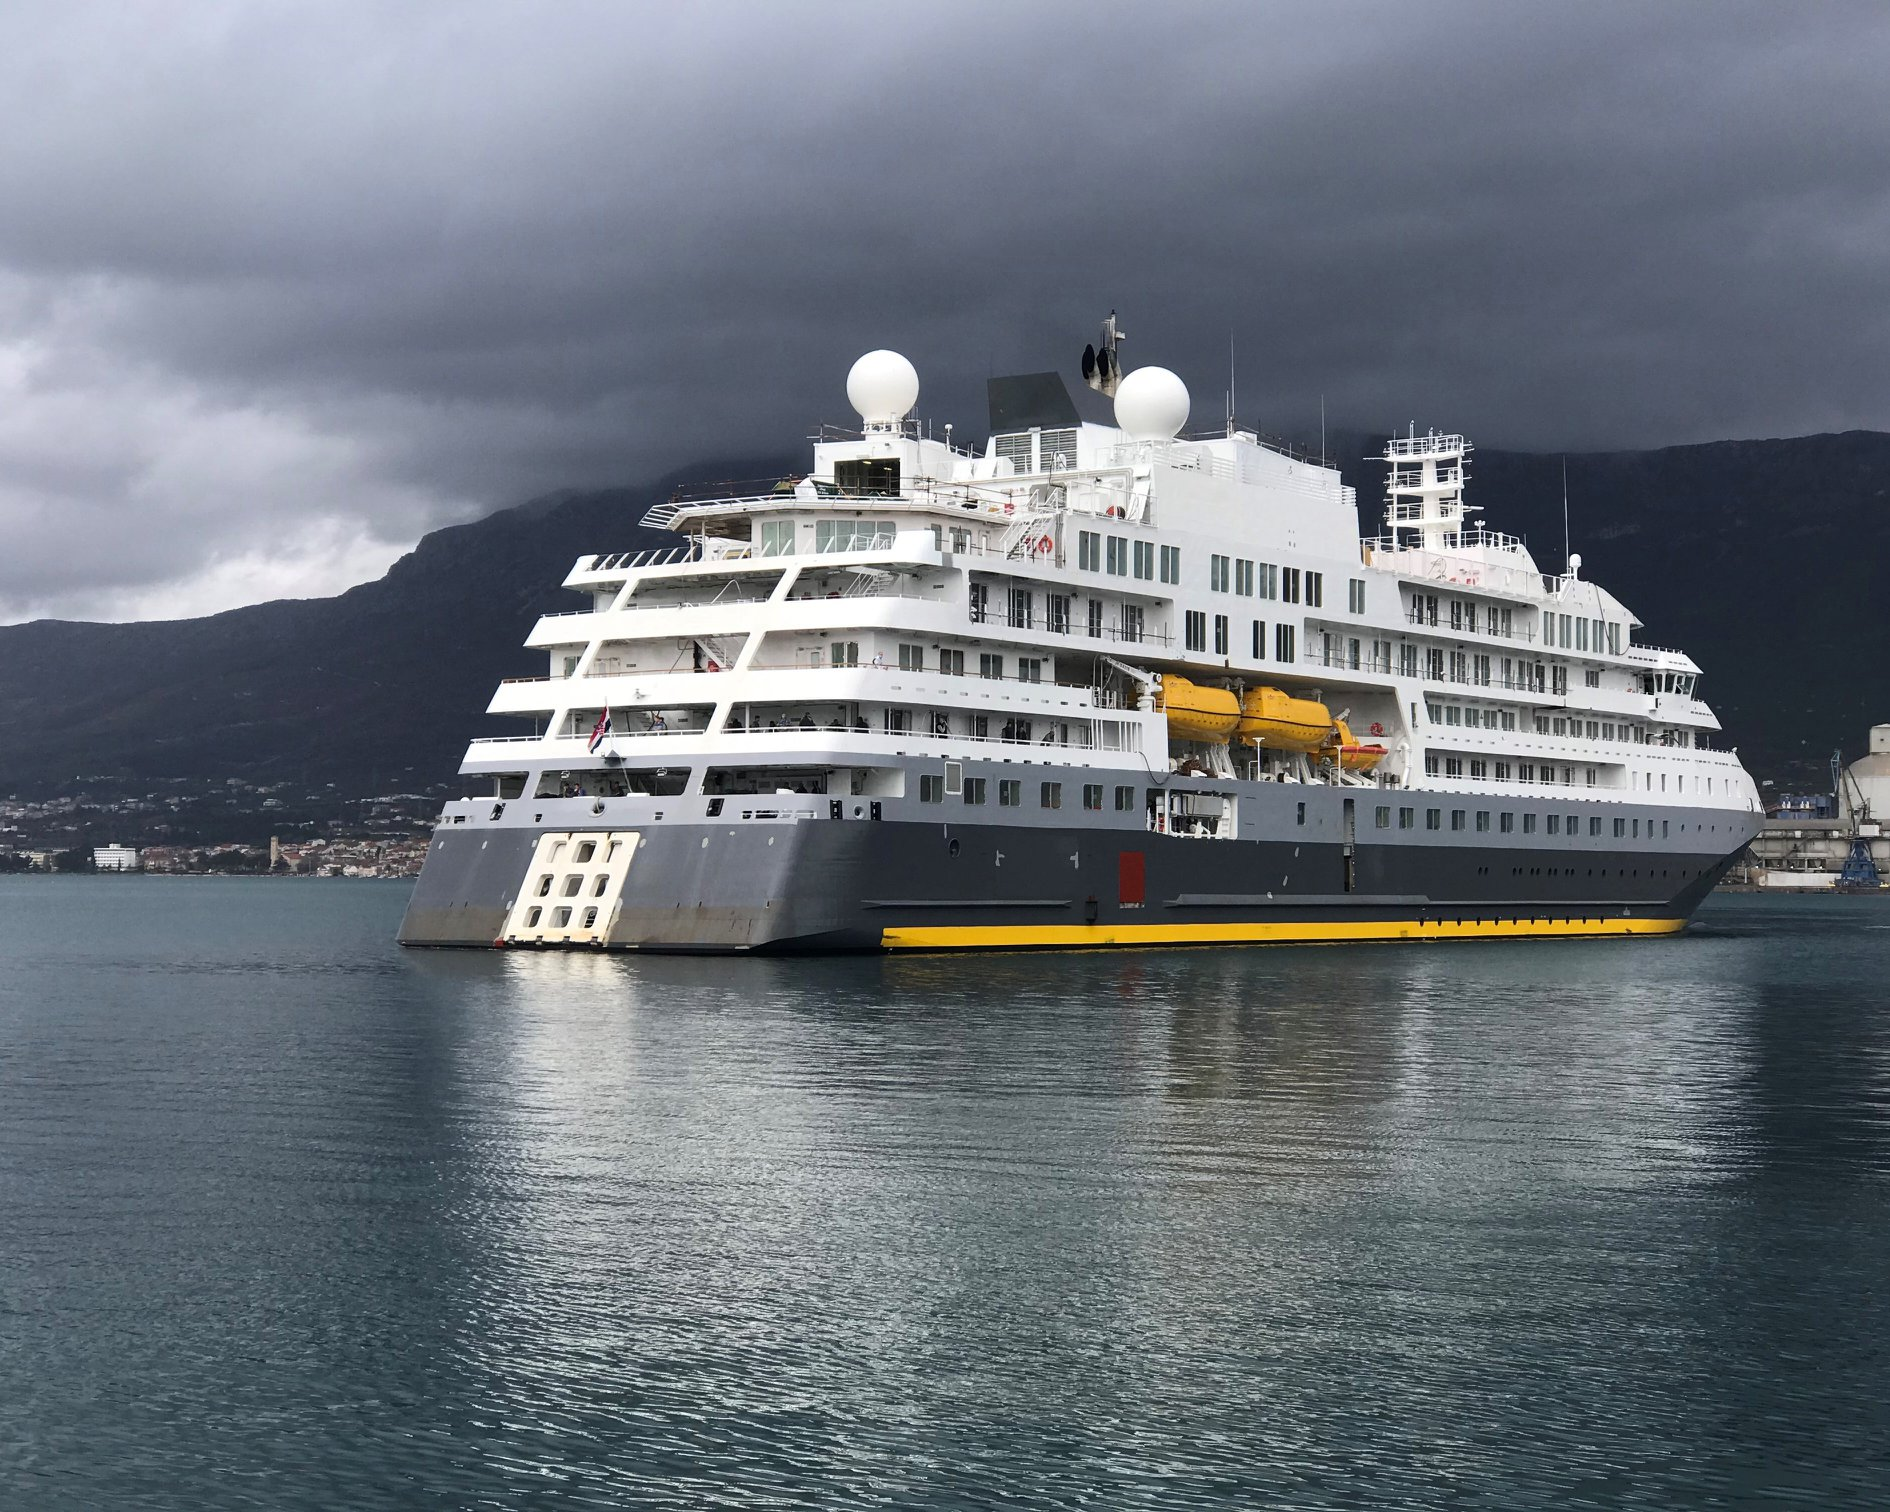 Laurie Di Vincenzo has worked with Quark Expeditions for 12 years and this year will take up the role of first Expedition Leader on the company's ground-breaking new vessel Ultramarine.